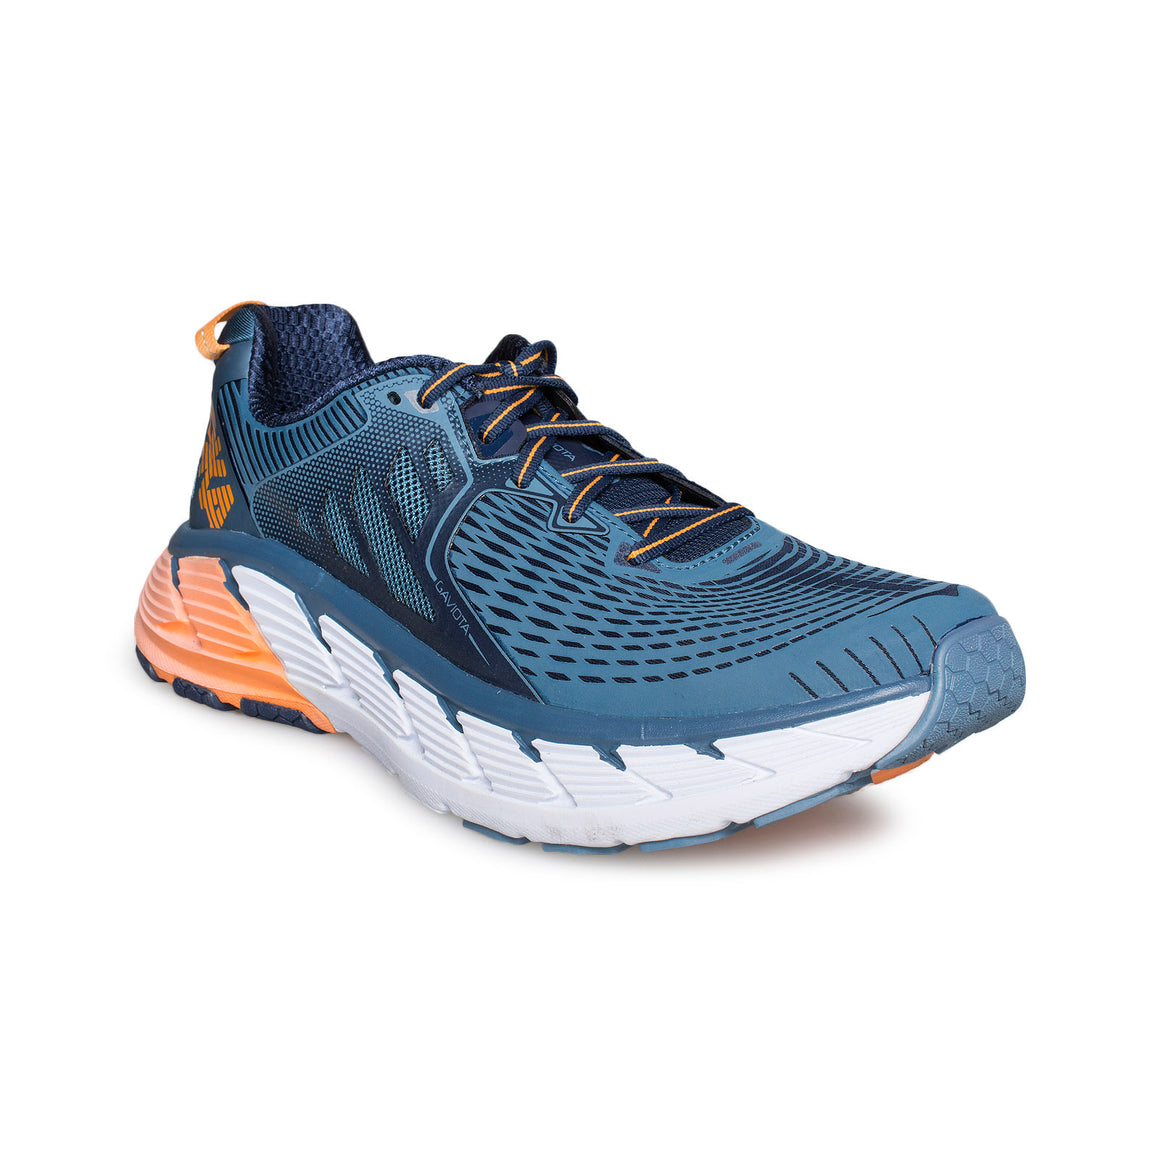 Hoka One One Gaviota Bluestone / Black Iris Running Shoes - Men's